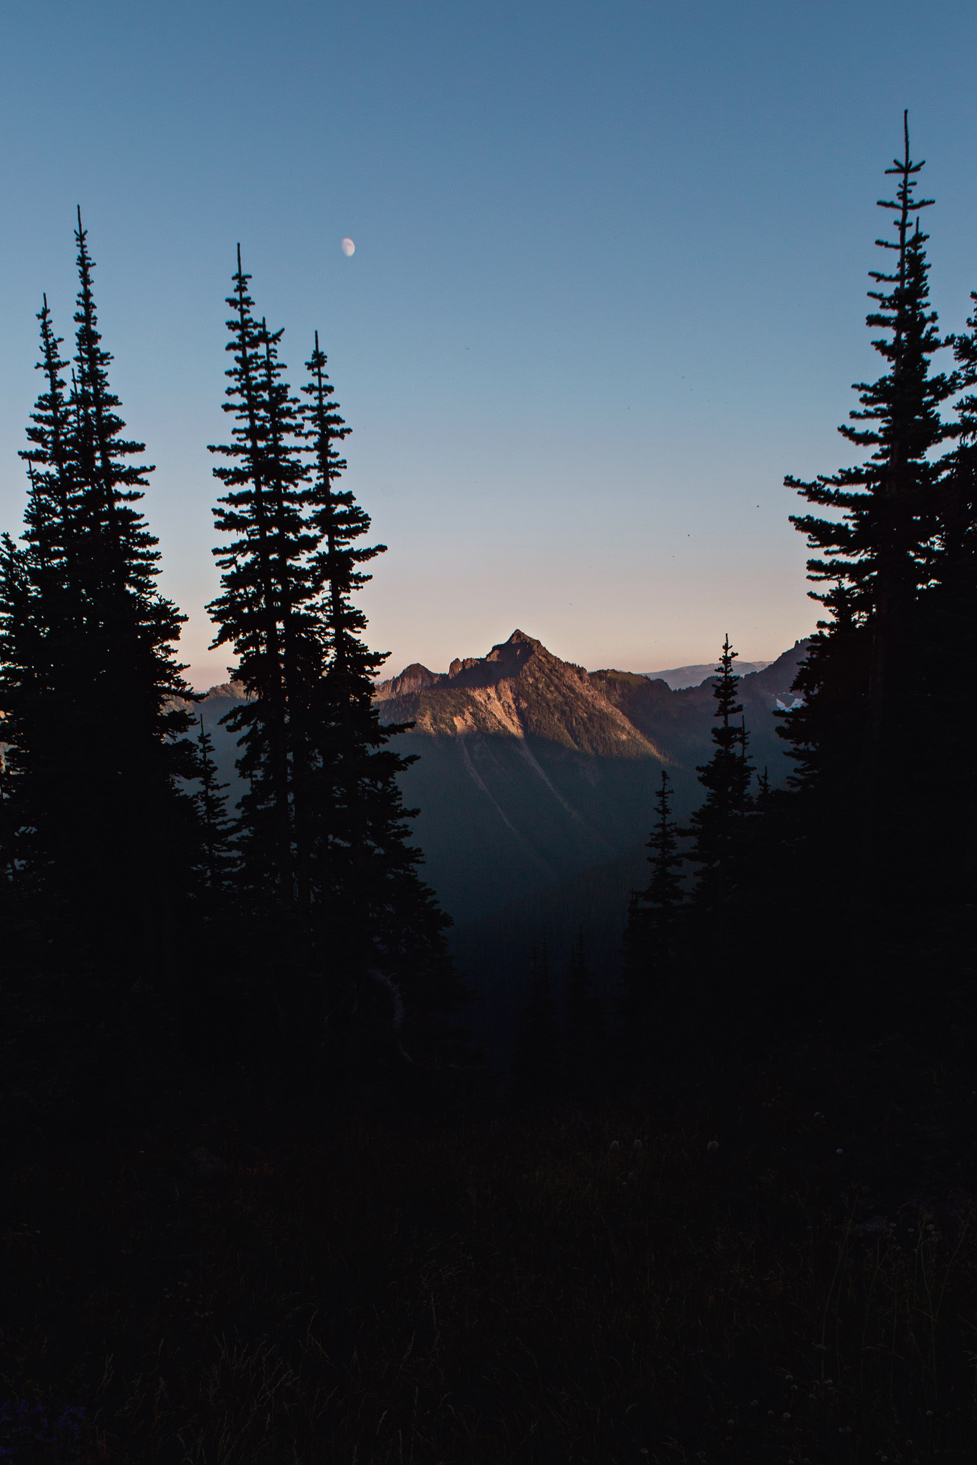 CindyGiovagnoli_MountRainierNationalPark_Washington_Seattle_PNW-017.jpg